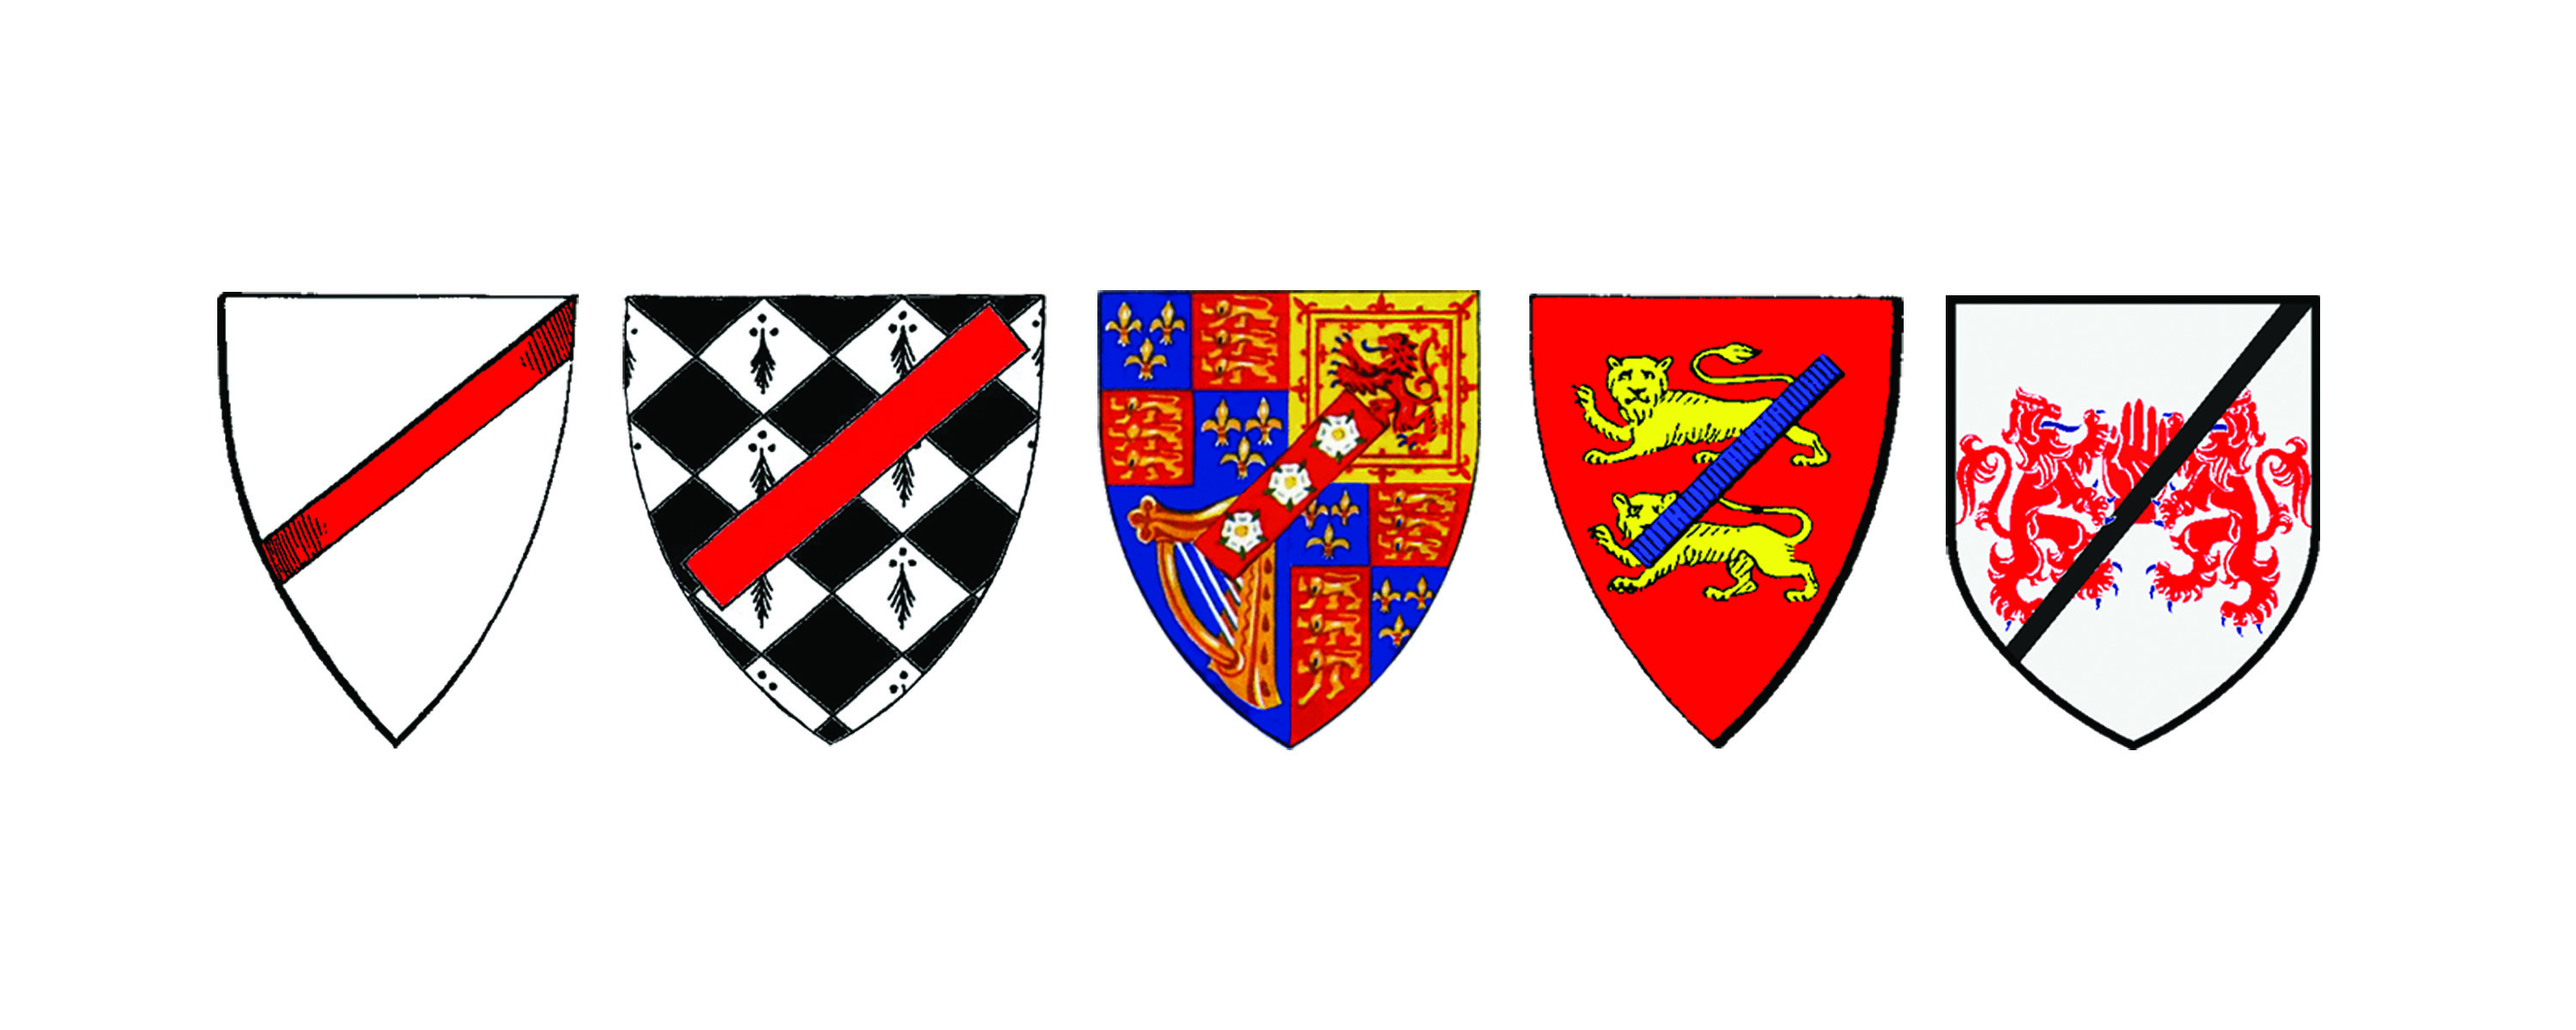 Figure 10.: Medieval, European heraldry exemplifies the power symbols carry to mark members of a given society with 'otherness.' Unless we sensitize ourselves with increased iconographic empathy, our sign systems will continue to perpetuate exclusionary social and cultural ideas, and remain as stereotypical in our future information landscape as they were during European design's often ignoble, heraldic past. Source: Dobson, T. 2016.